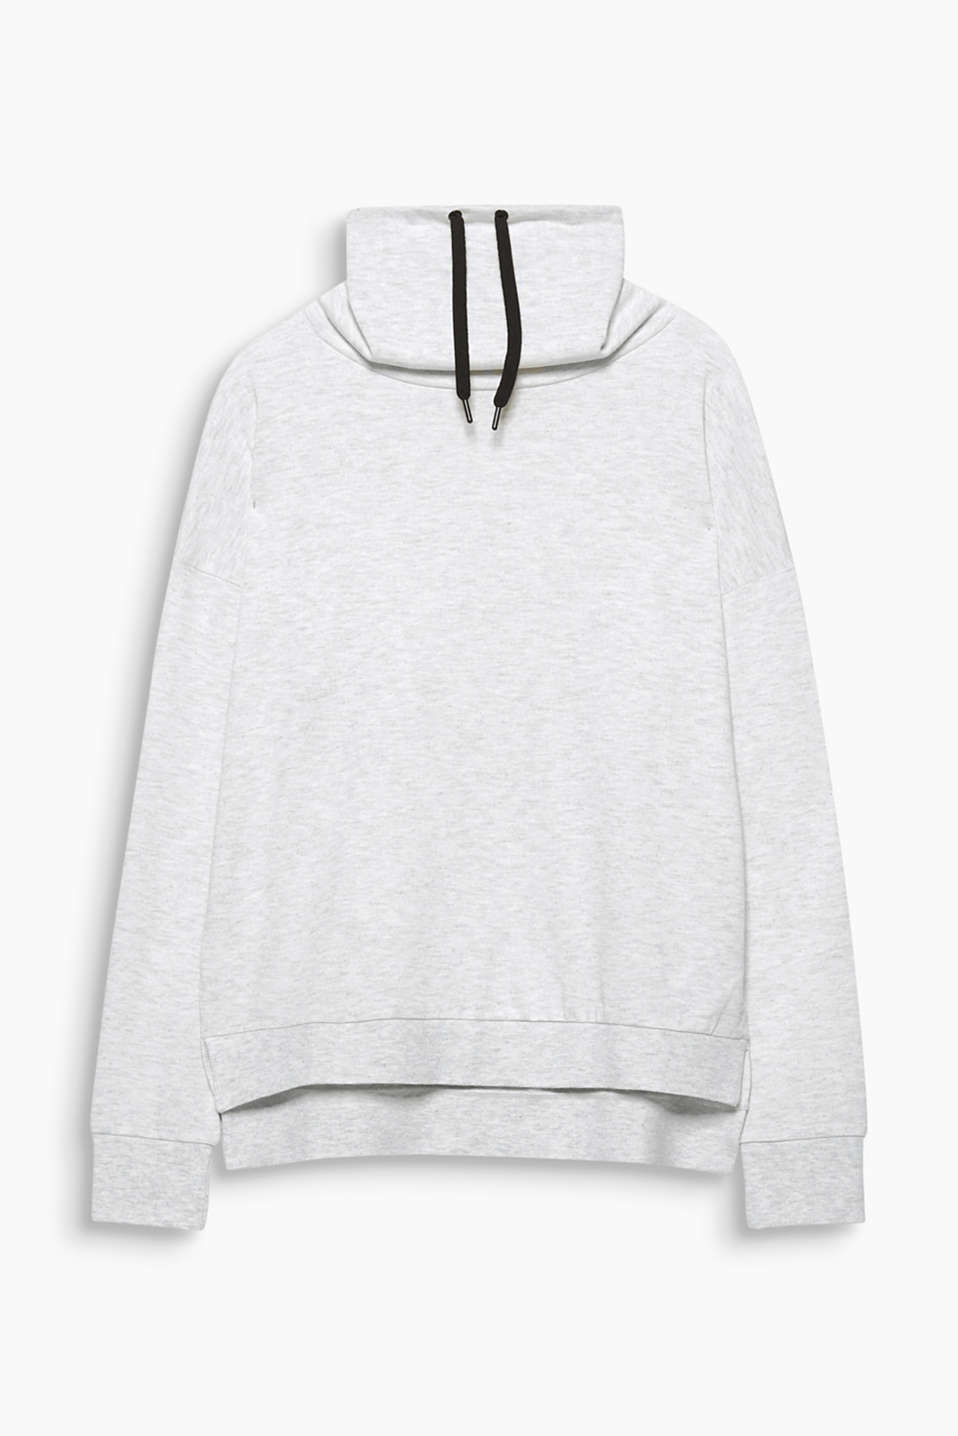 This sweatshirt with a high drawstring panel collar is casually cut, fashionably melange and super soft!